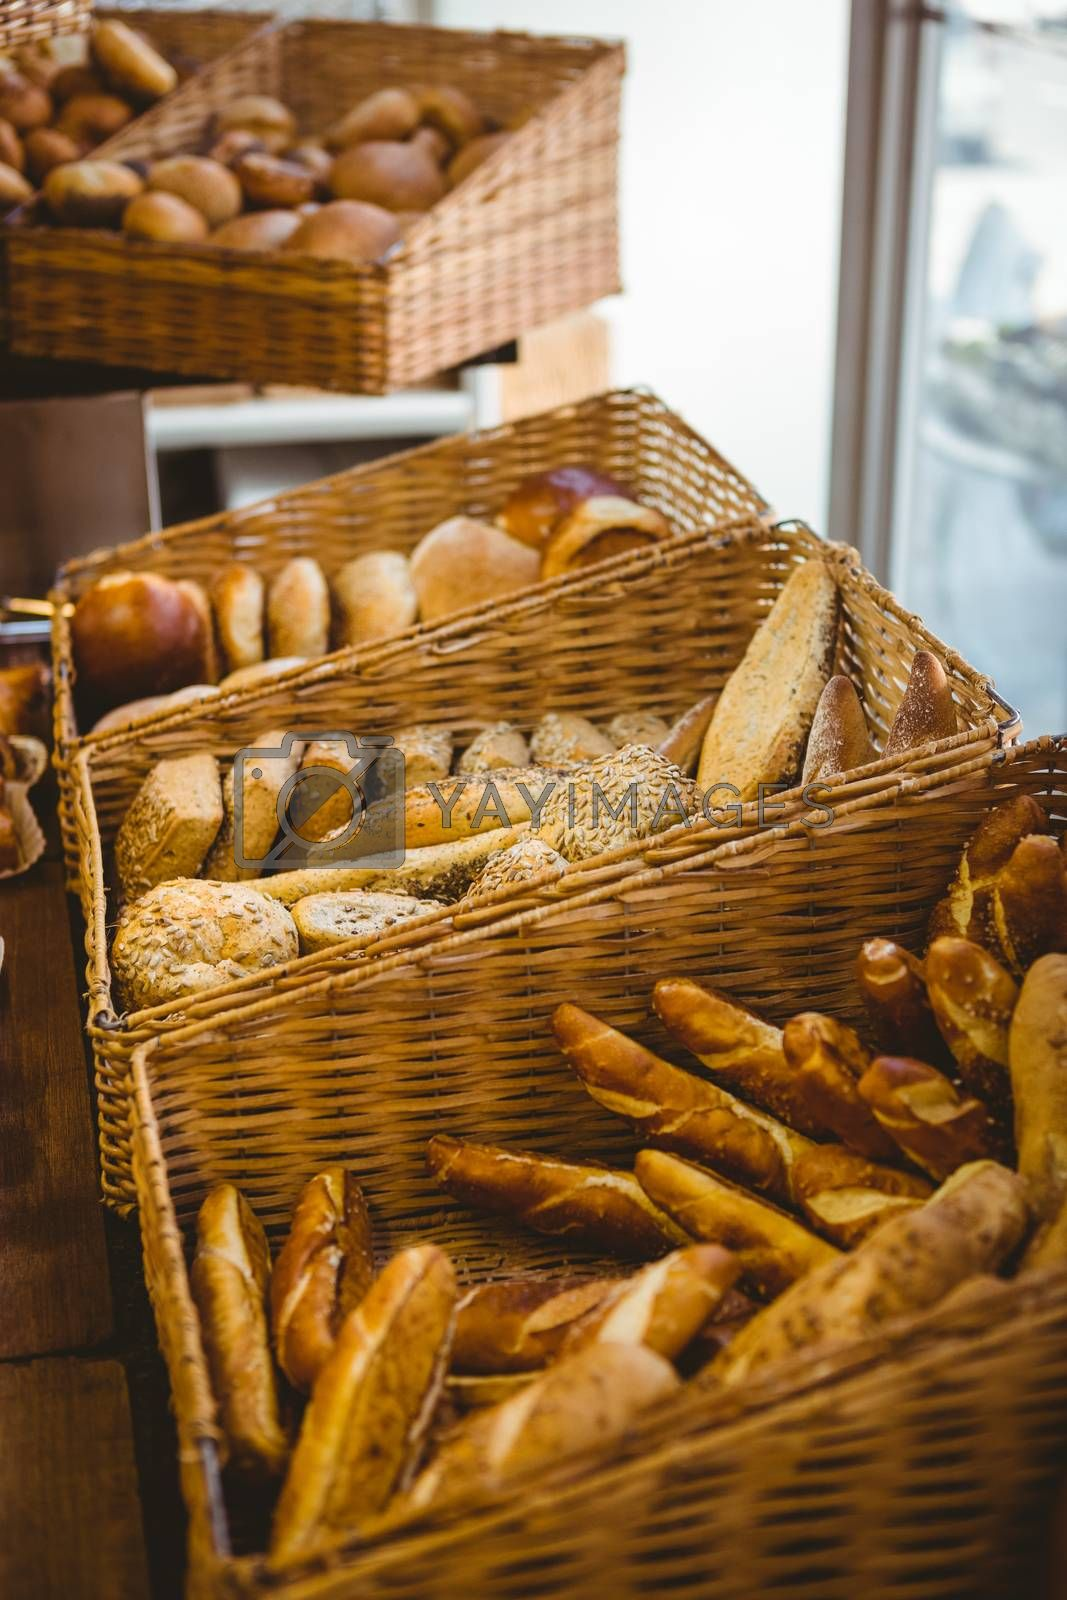 Royalty free image of Close up of basket with fresh bread by Wavebreakmedia